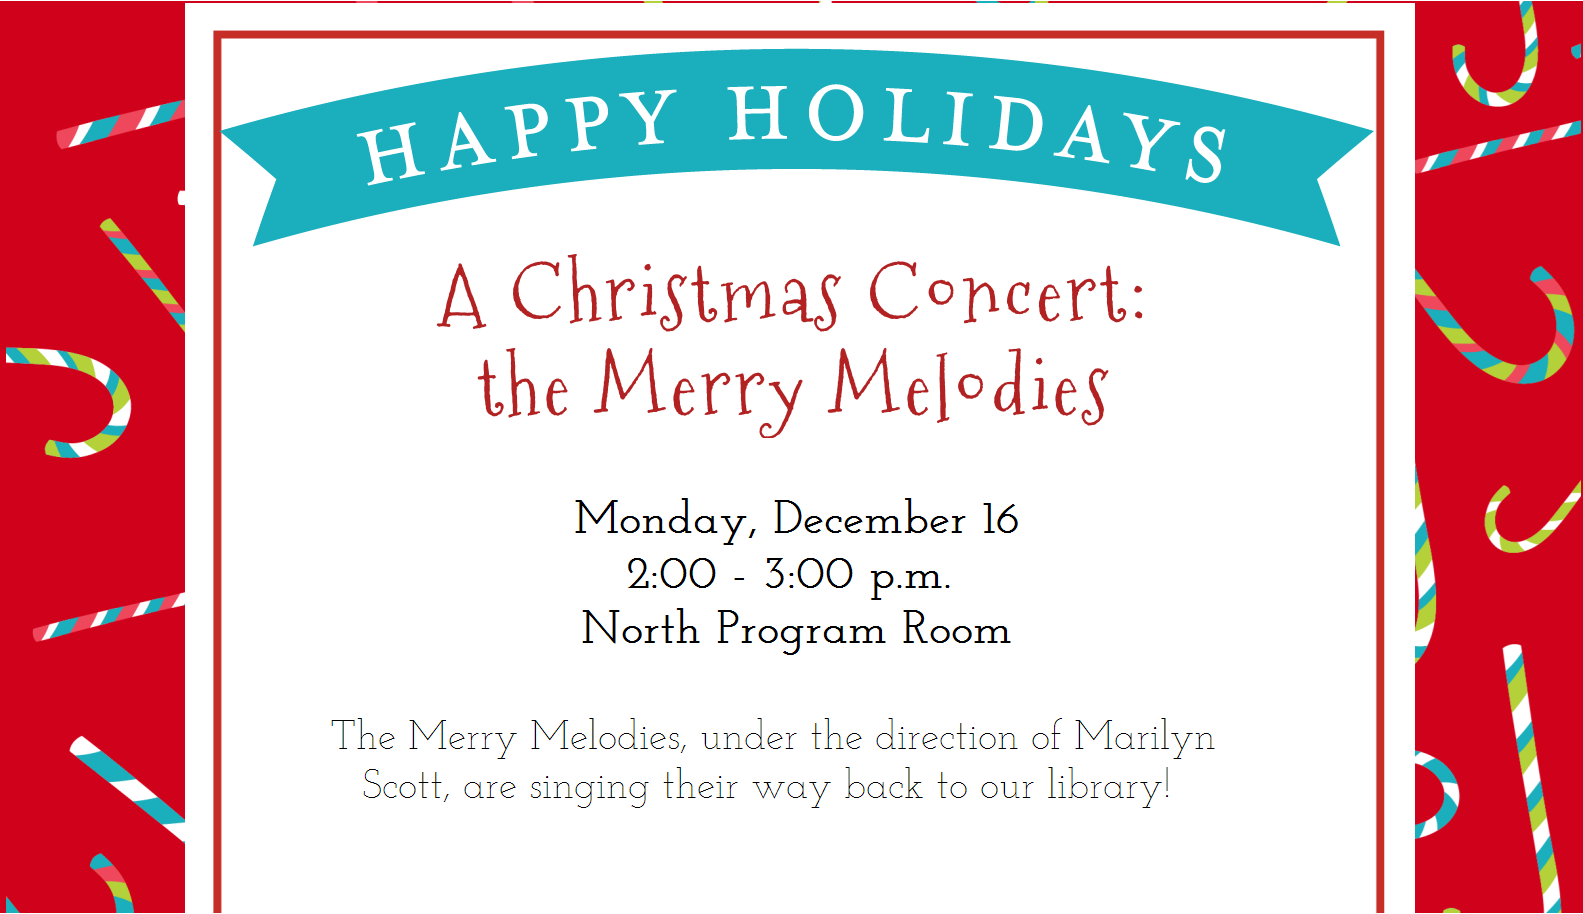 A Christmas Concert by the Merry Melodies